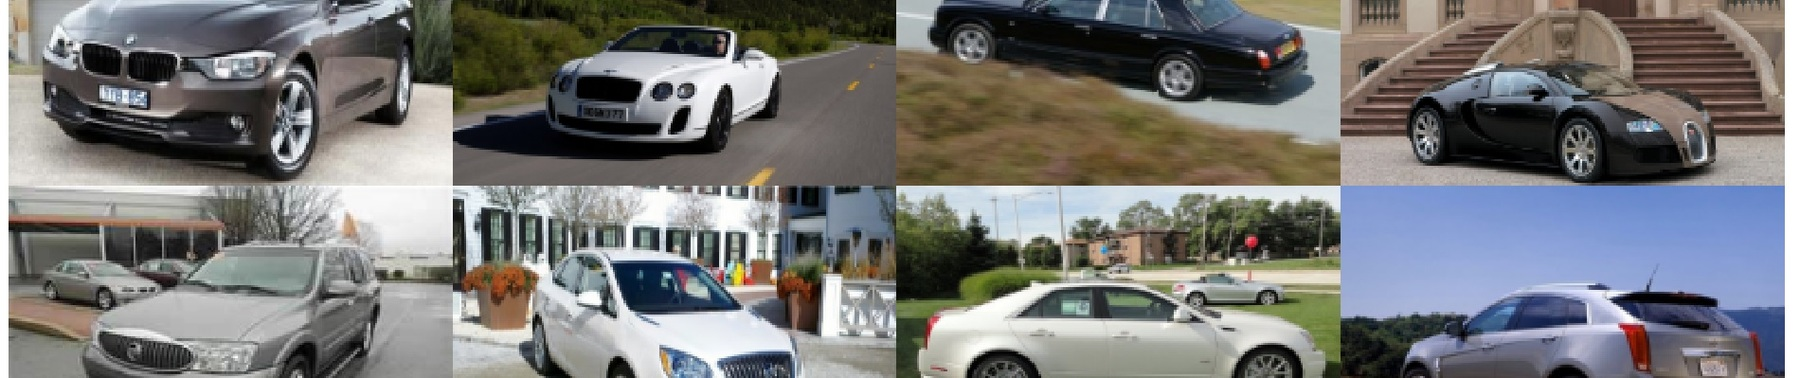 Stanford Car Dataset by classes folder | Kaggle